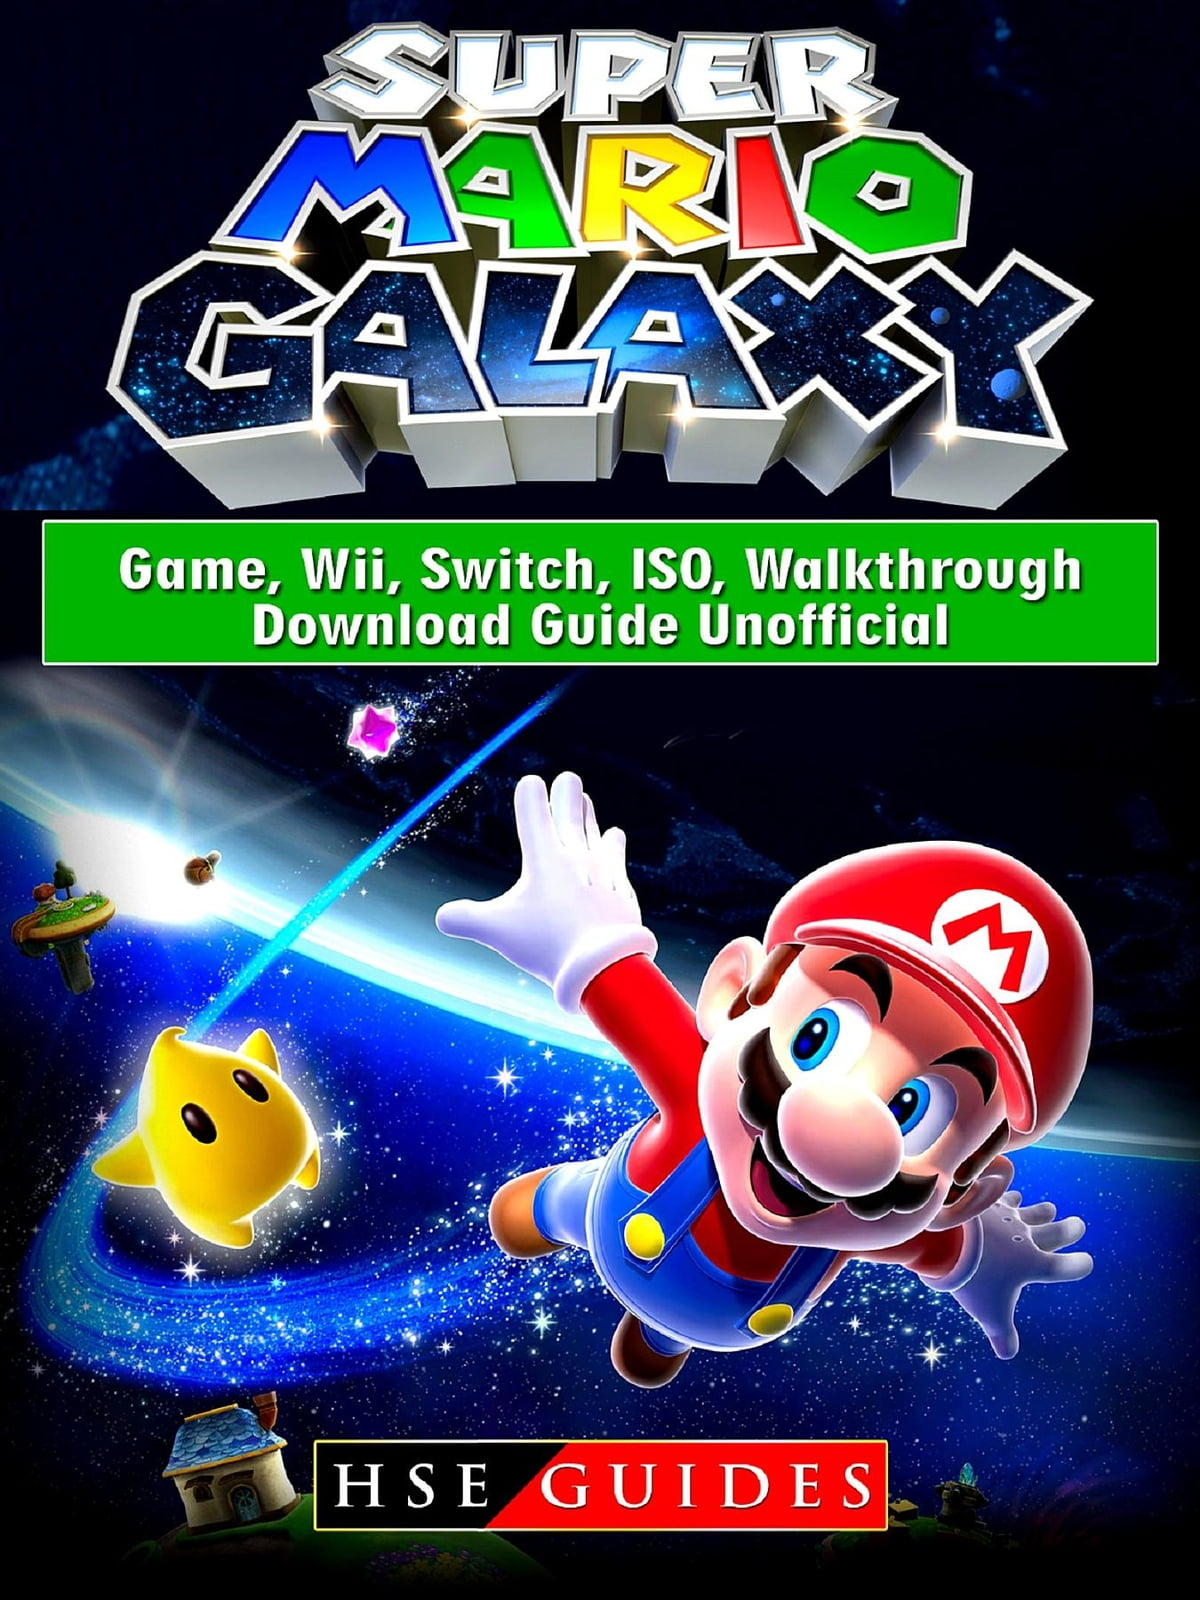 super mario galaxy game, wii, switch, iso, walkthrough, download